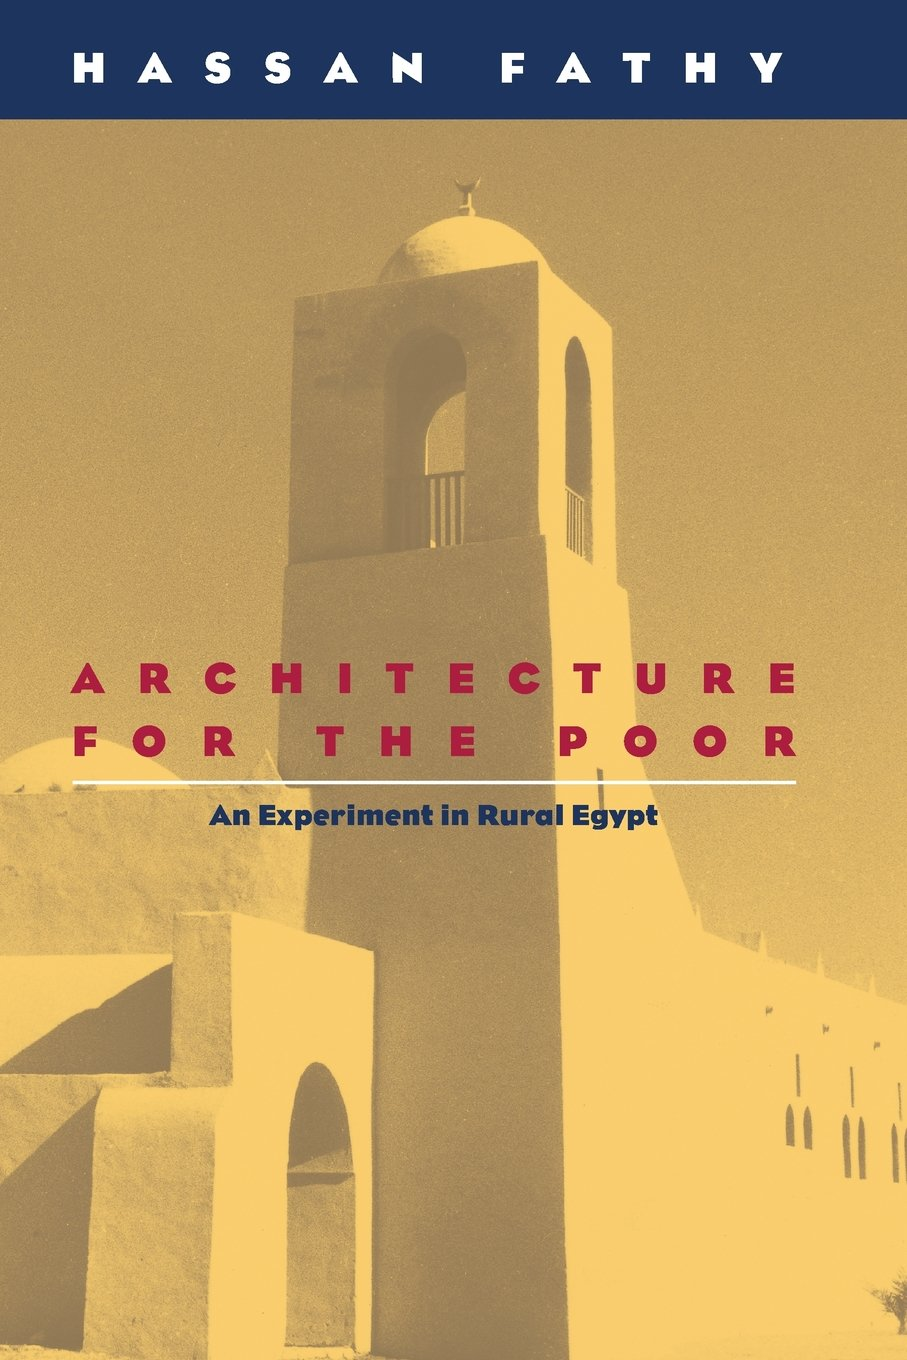 Architecture for the Poor: An Experiment in Rural Egypt Phoenix Books: Amazon.es: Hassan Fathy: Libros en idiomas extranjeros